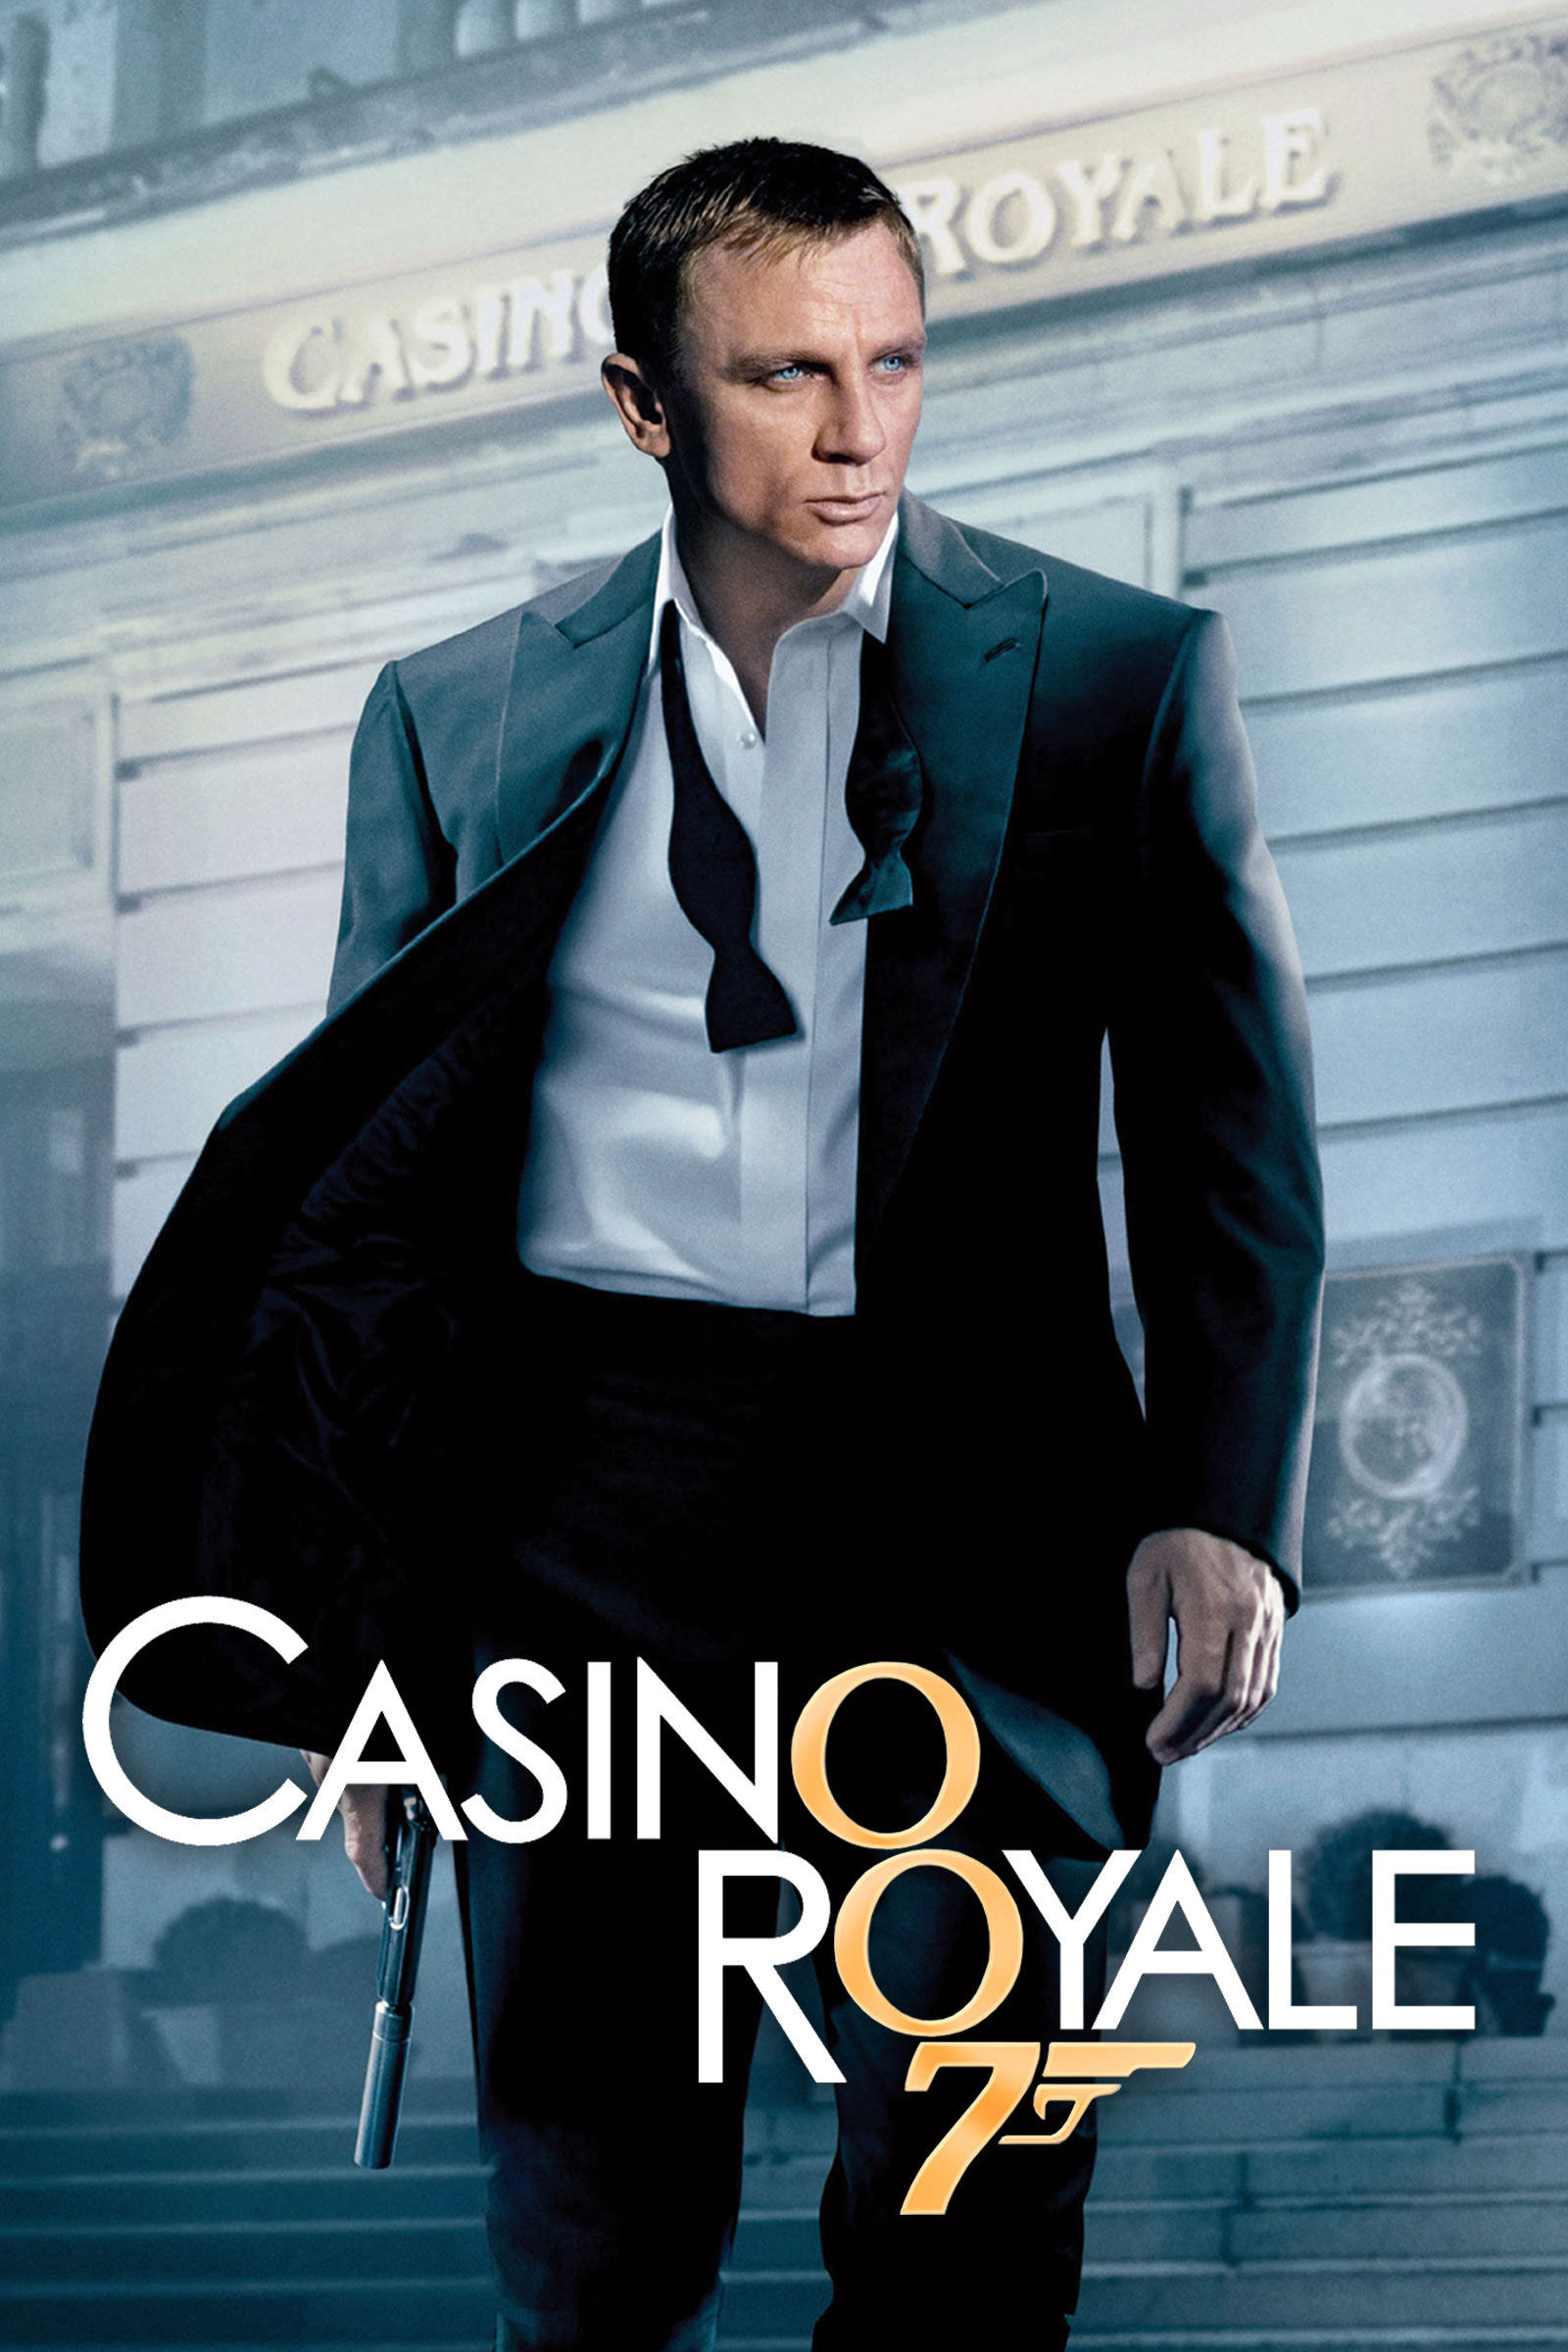 James bond casino royale hd online